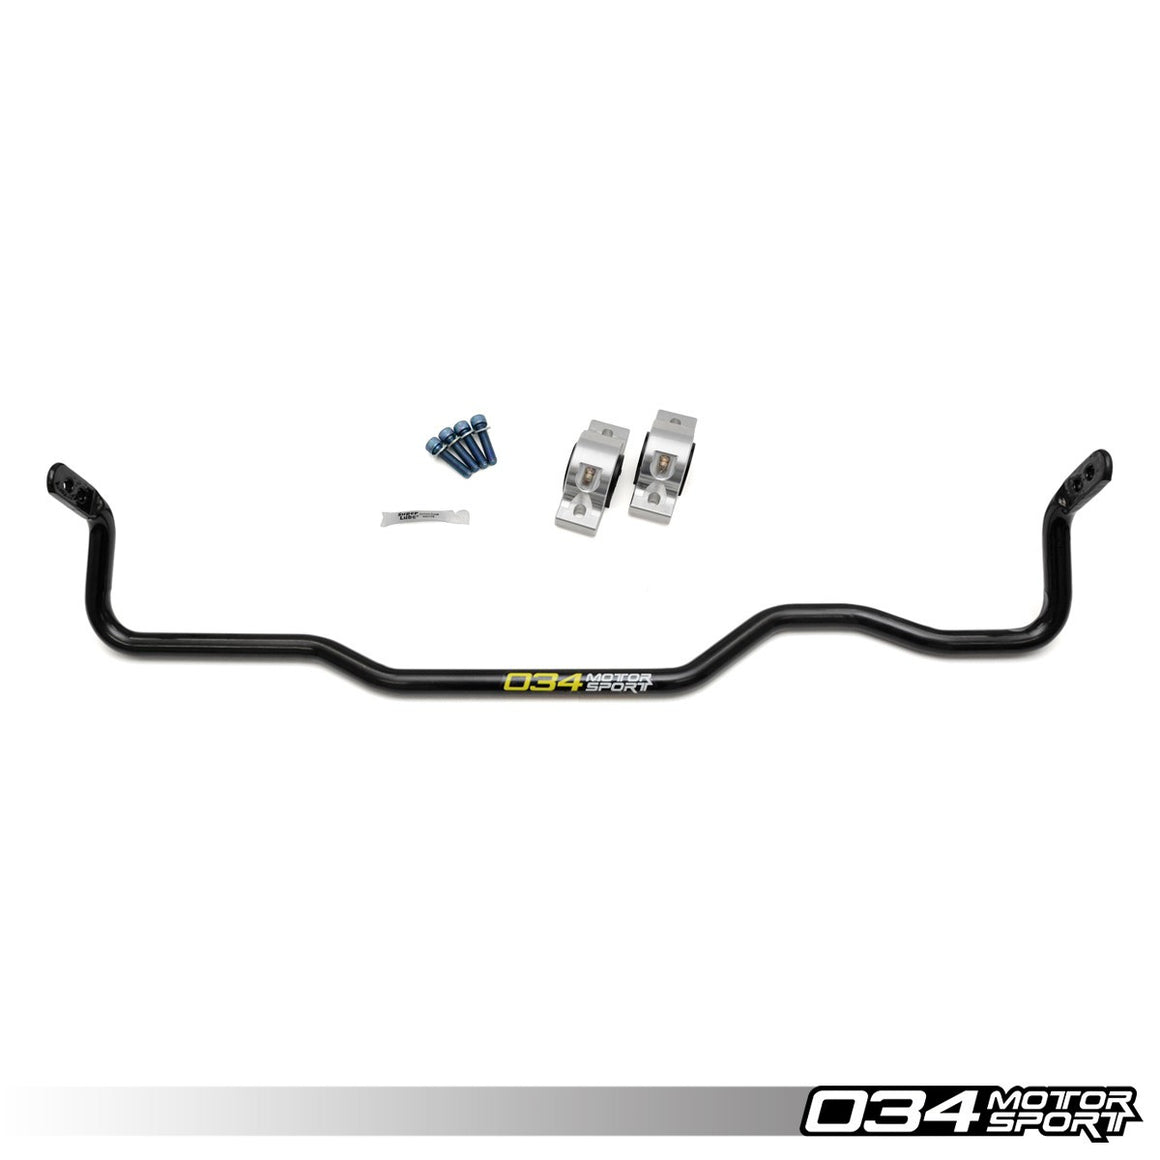 034Motorsport ADJUSTABLE MQB SOLID 22 mm REAR SWAY BAR UPGRADE - Redline Motorworks